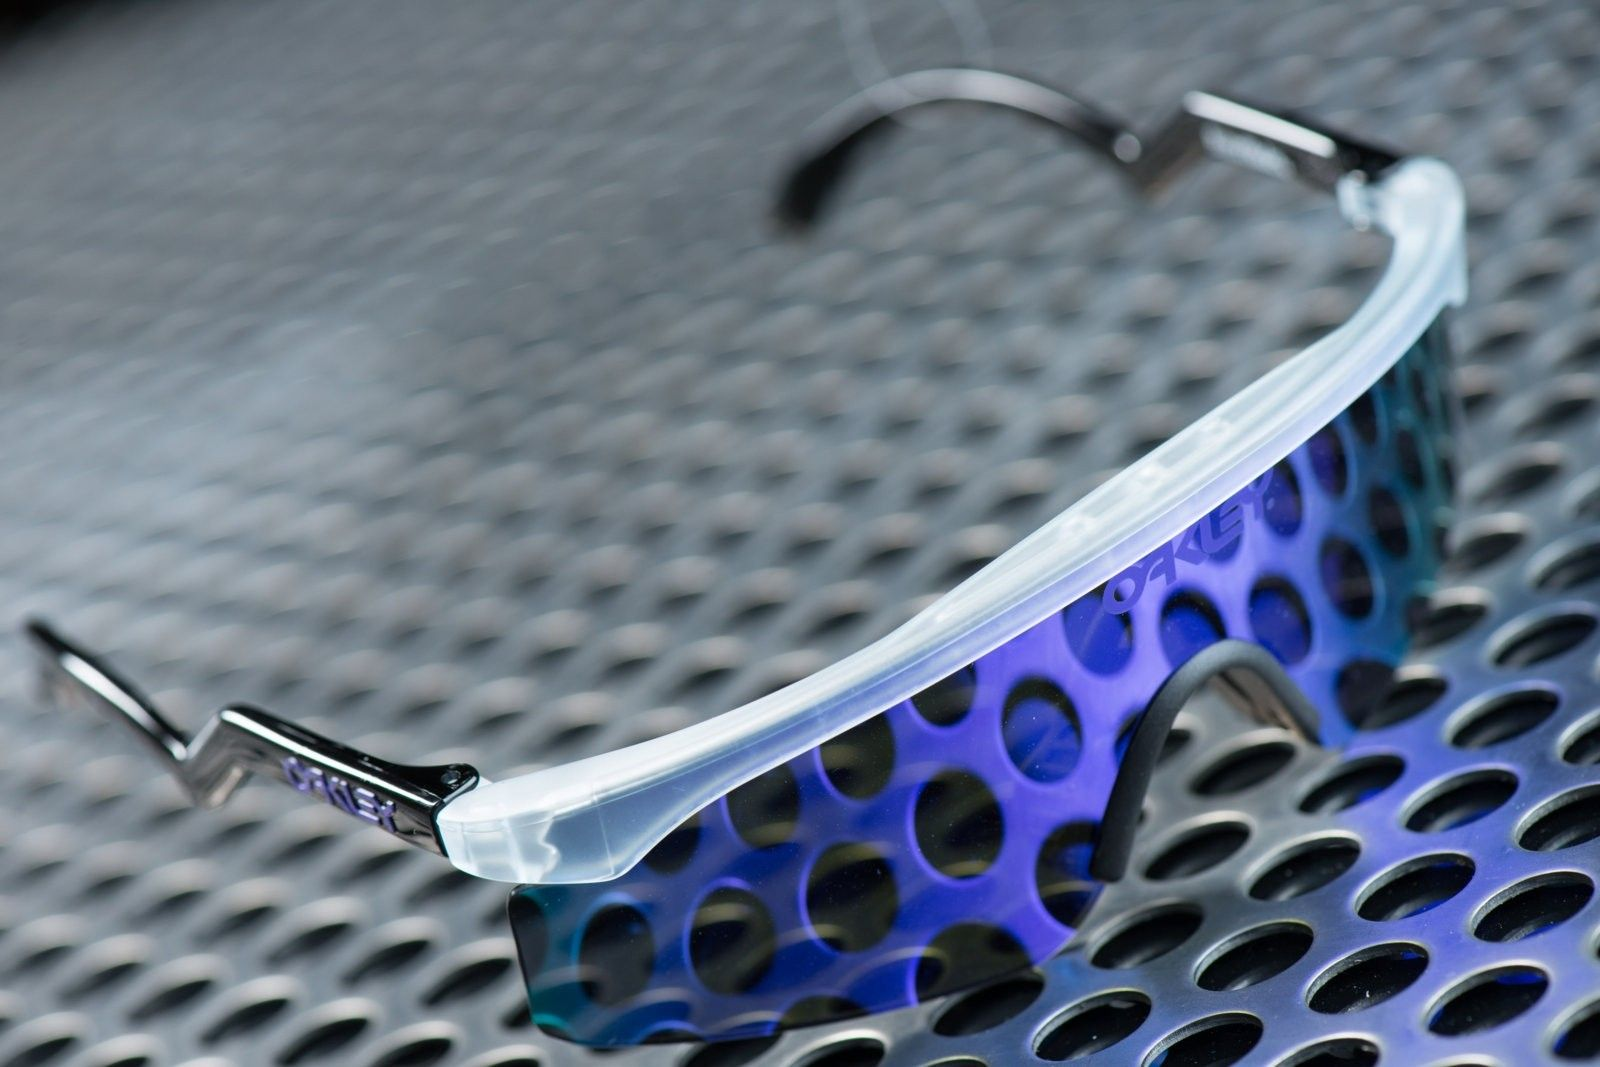 1 of 3 Signed Oakley Heritage Razorblades by Jim Jannard - Matte Clear with Violet Iridium - Untitled Session00340.jpg